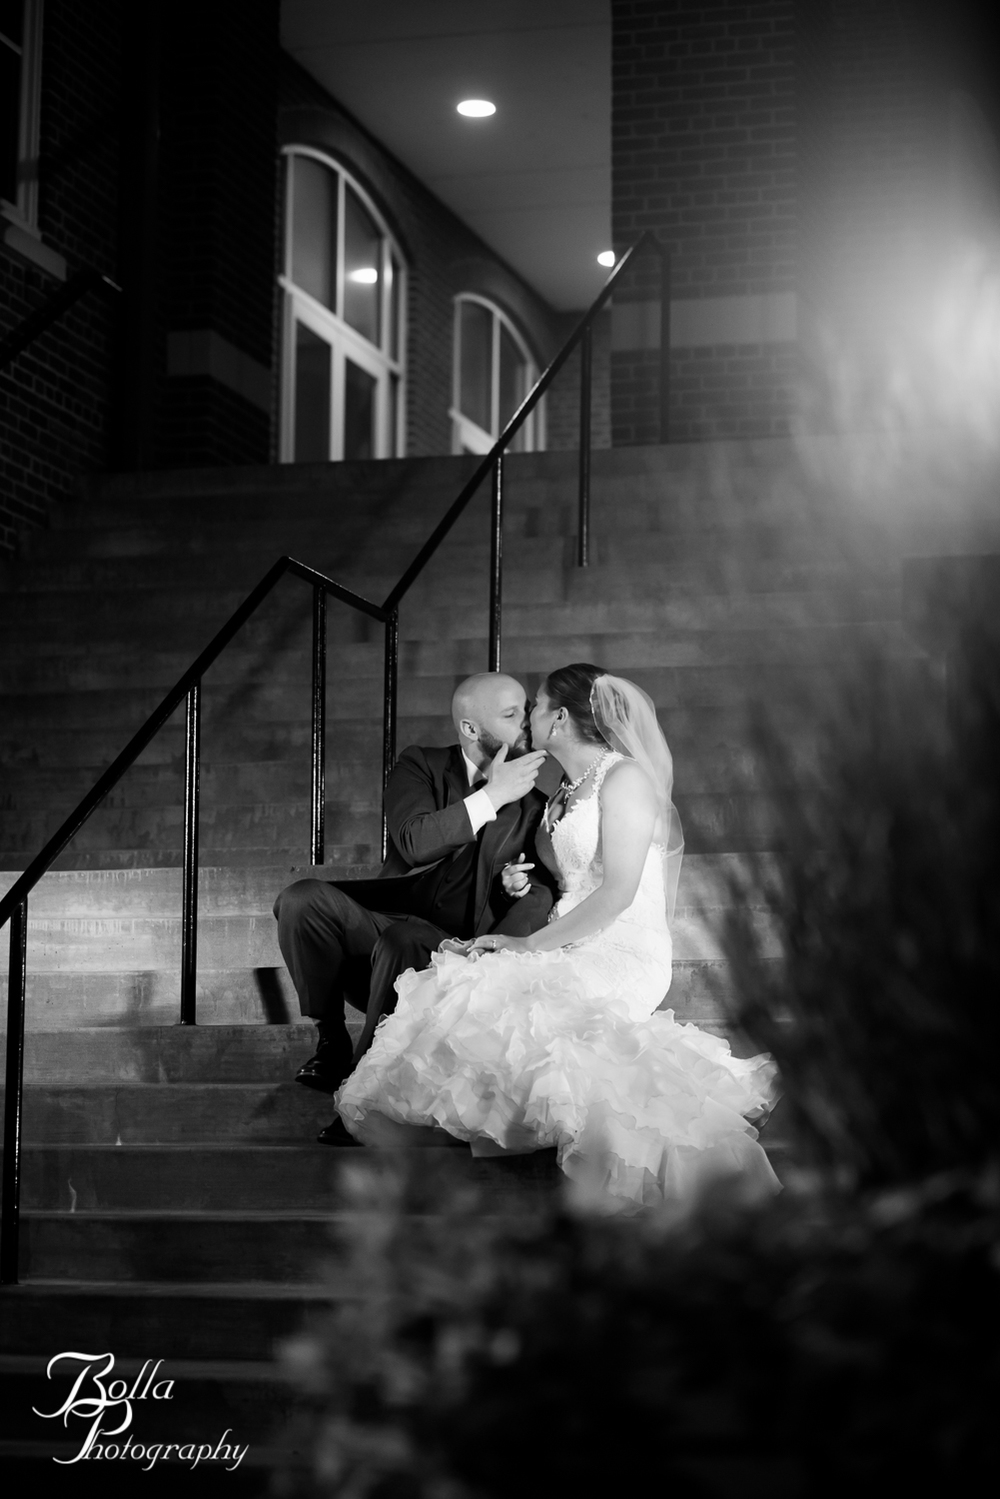 Bolla_Photography_St_Louis_wedding_photographer-0534.jpg